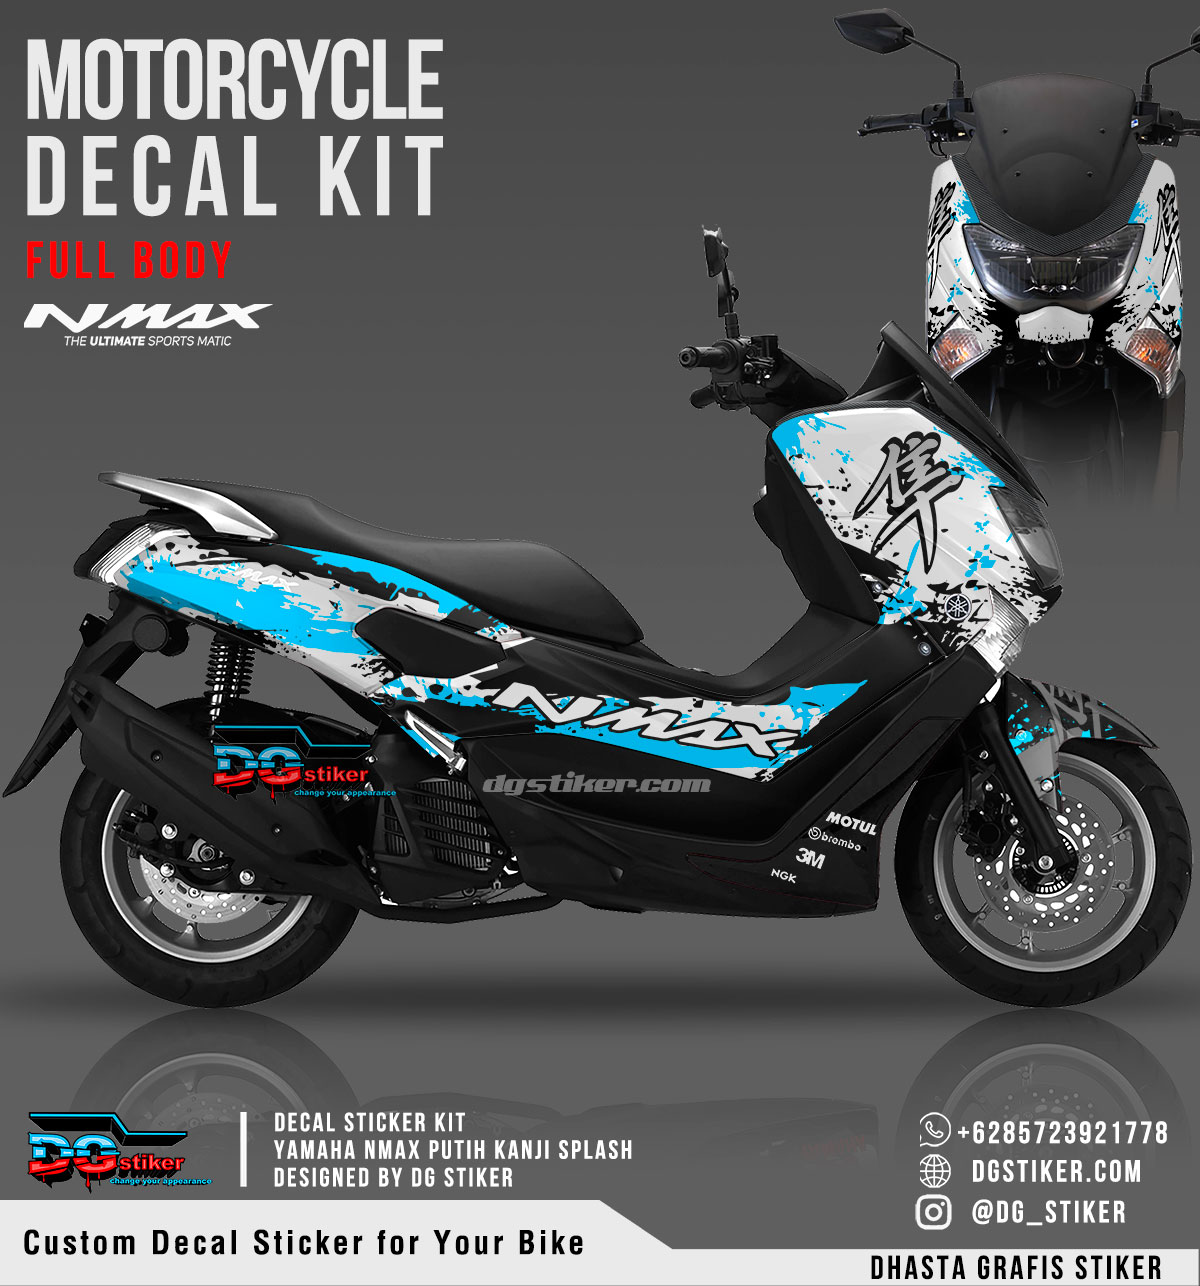 Decal Striping Nmax Putih Biru Kanji Splash DG Stiker